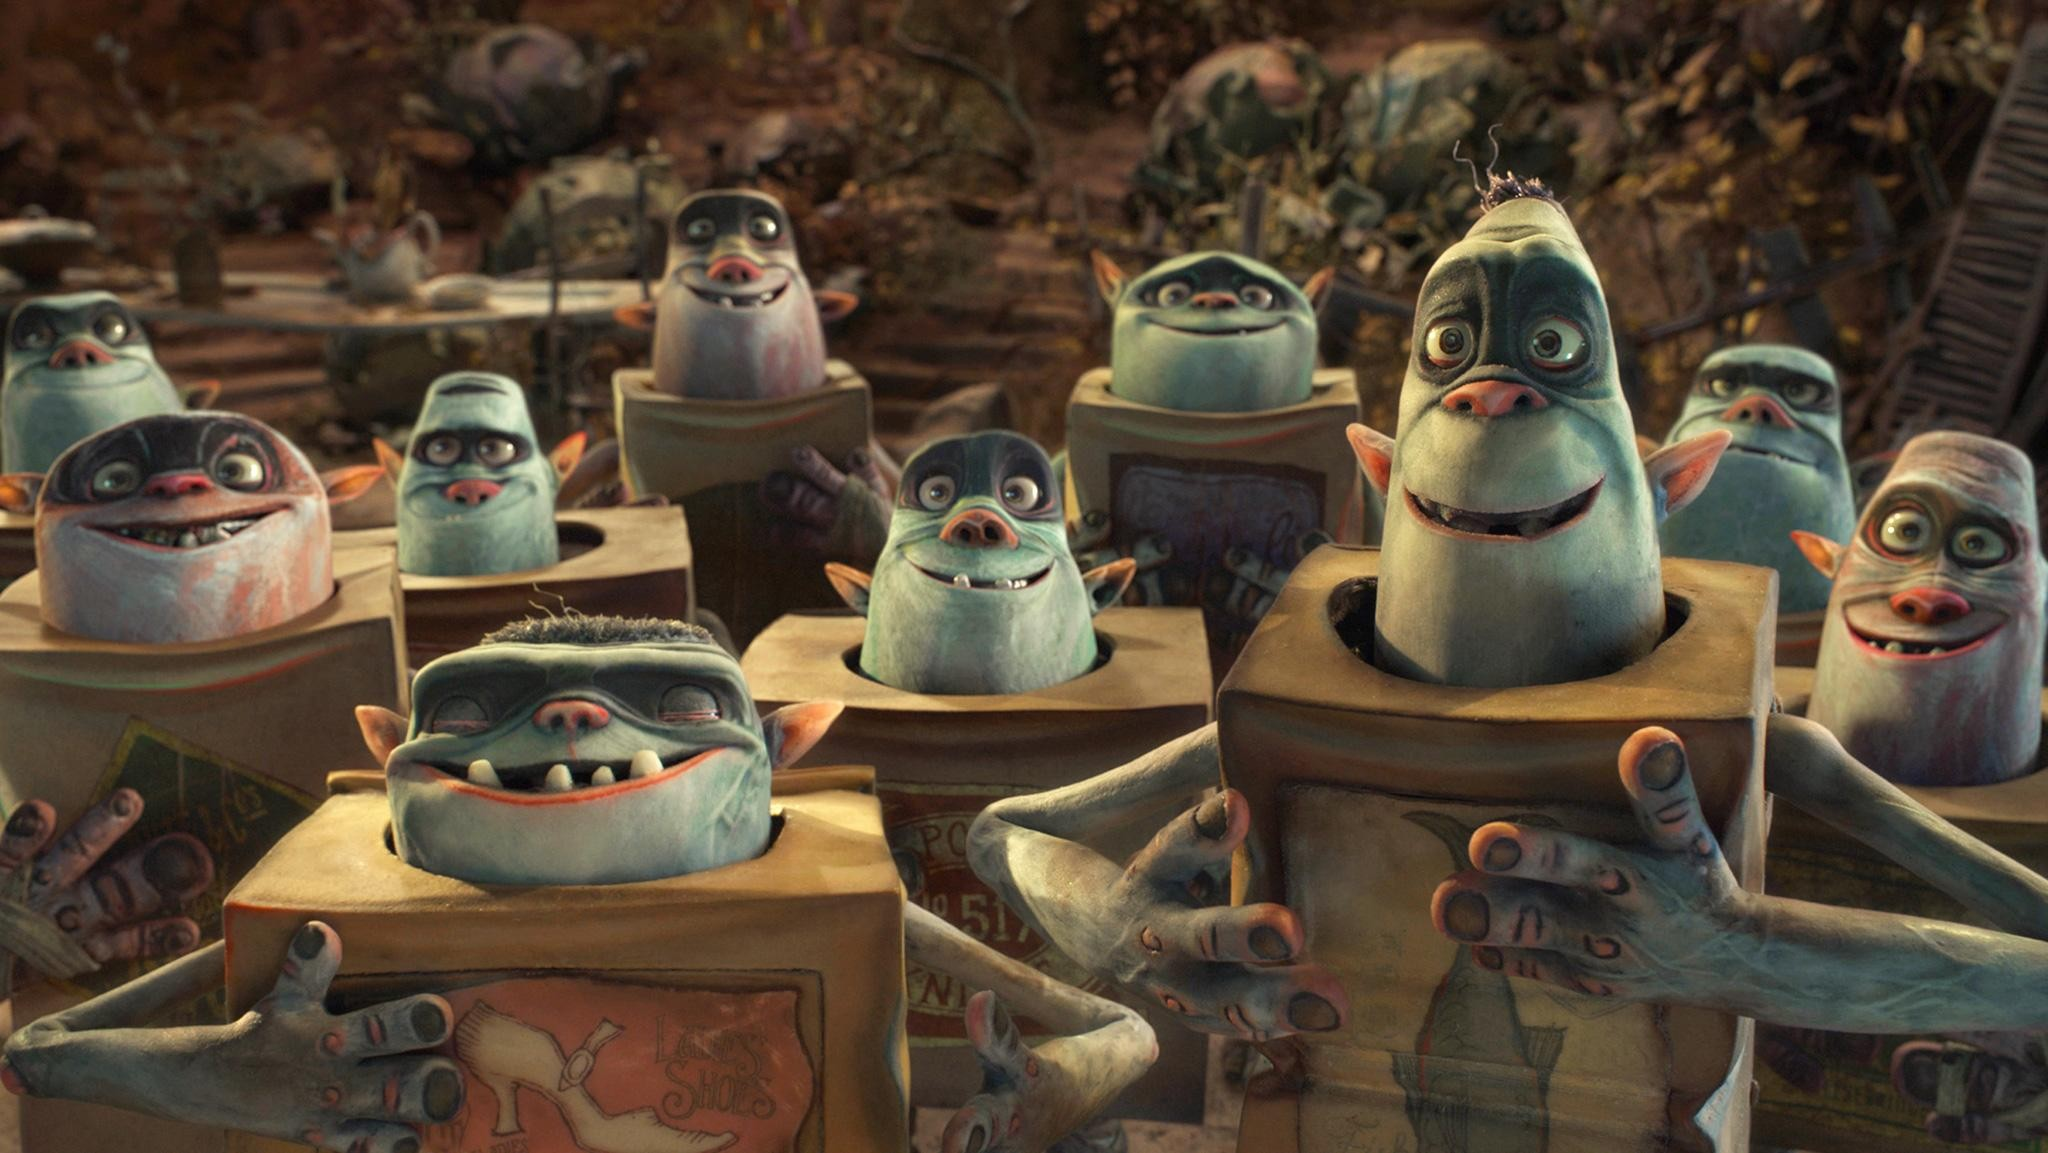 Boxtrolls comes home on Jan 20th